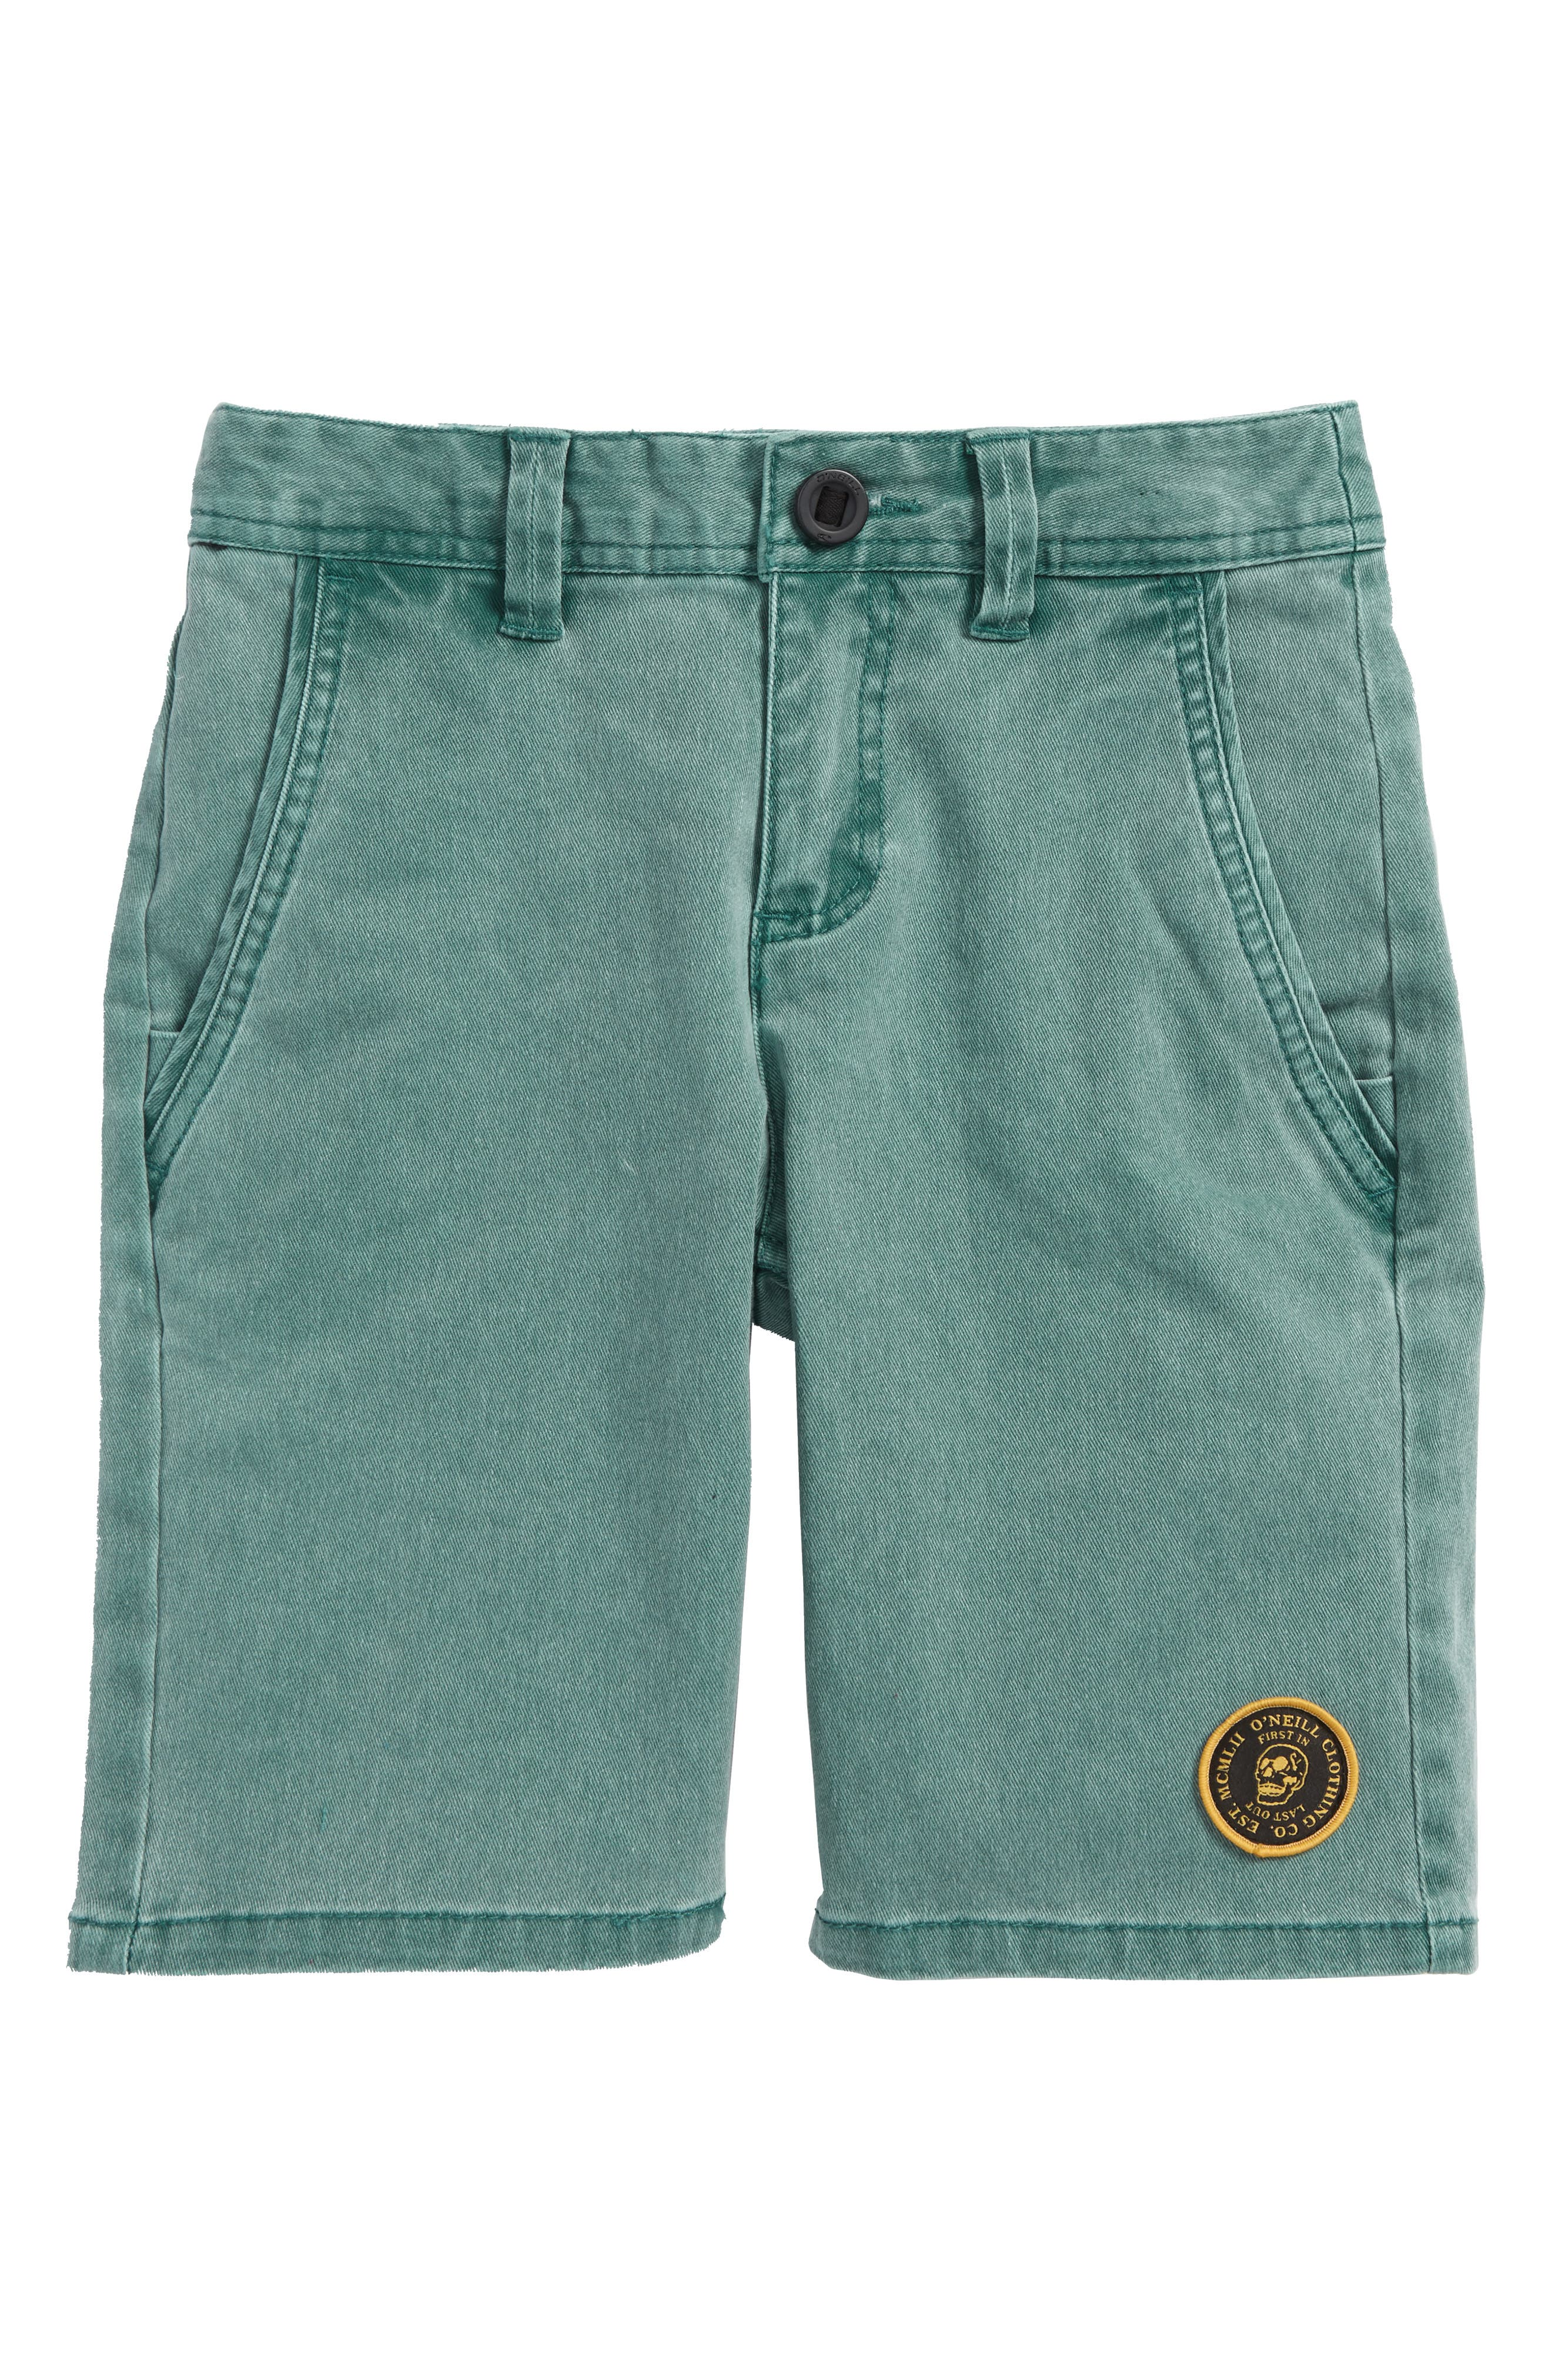 Rialto Shorts,                         Main,                         color, Forest Green